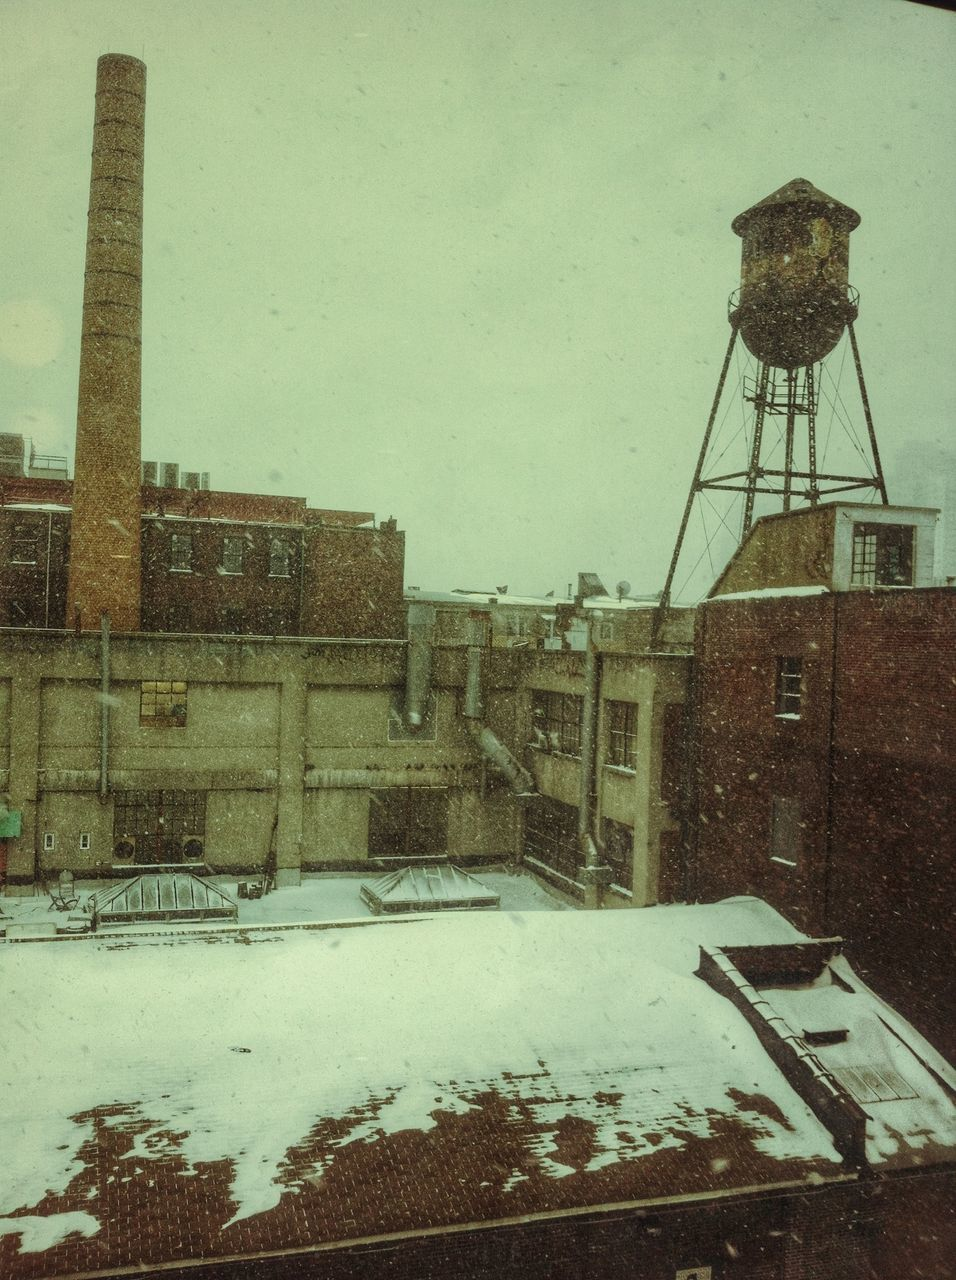 Industries and water tower during snowstorm